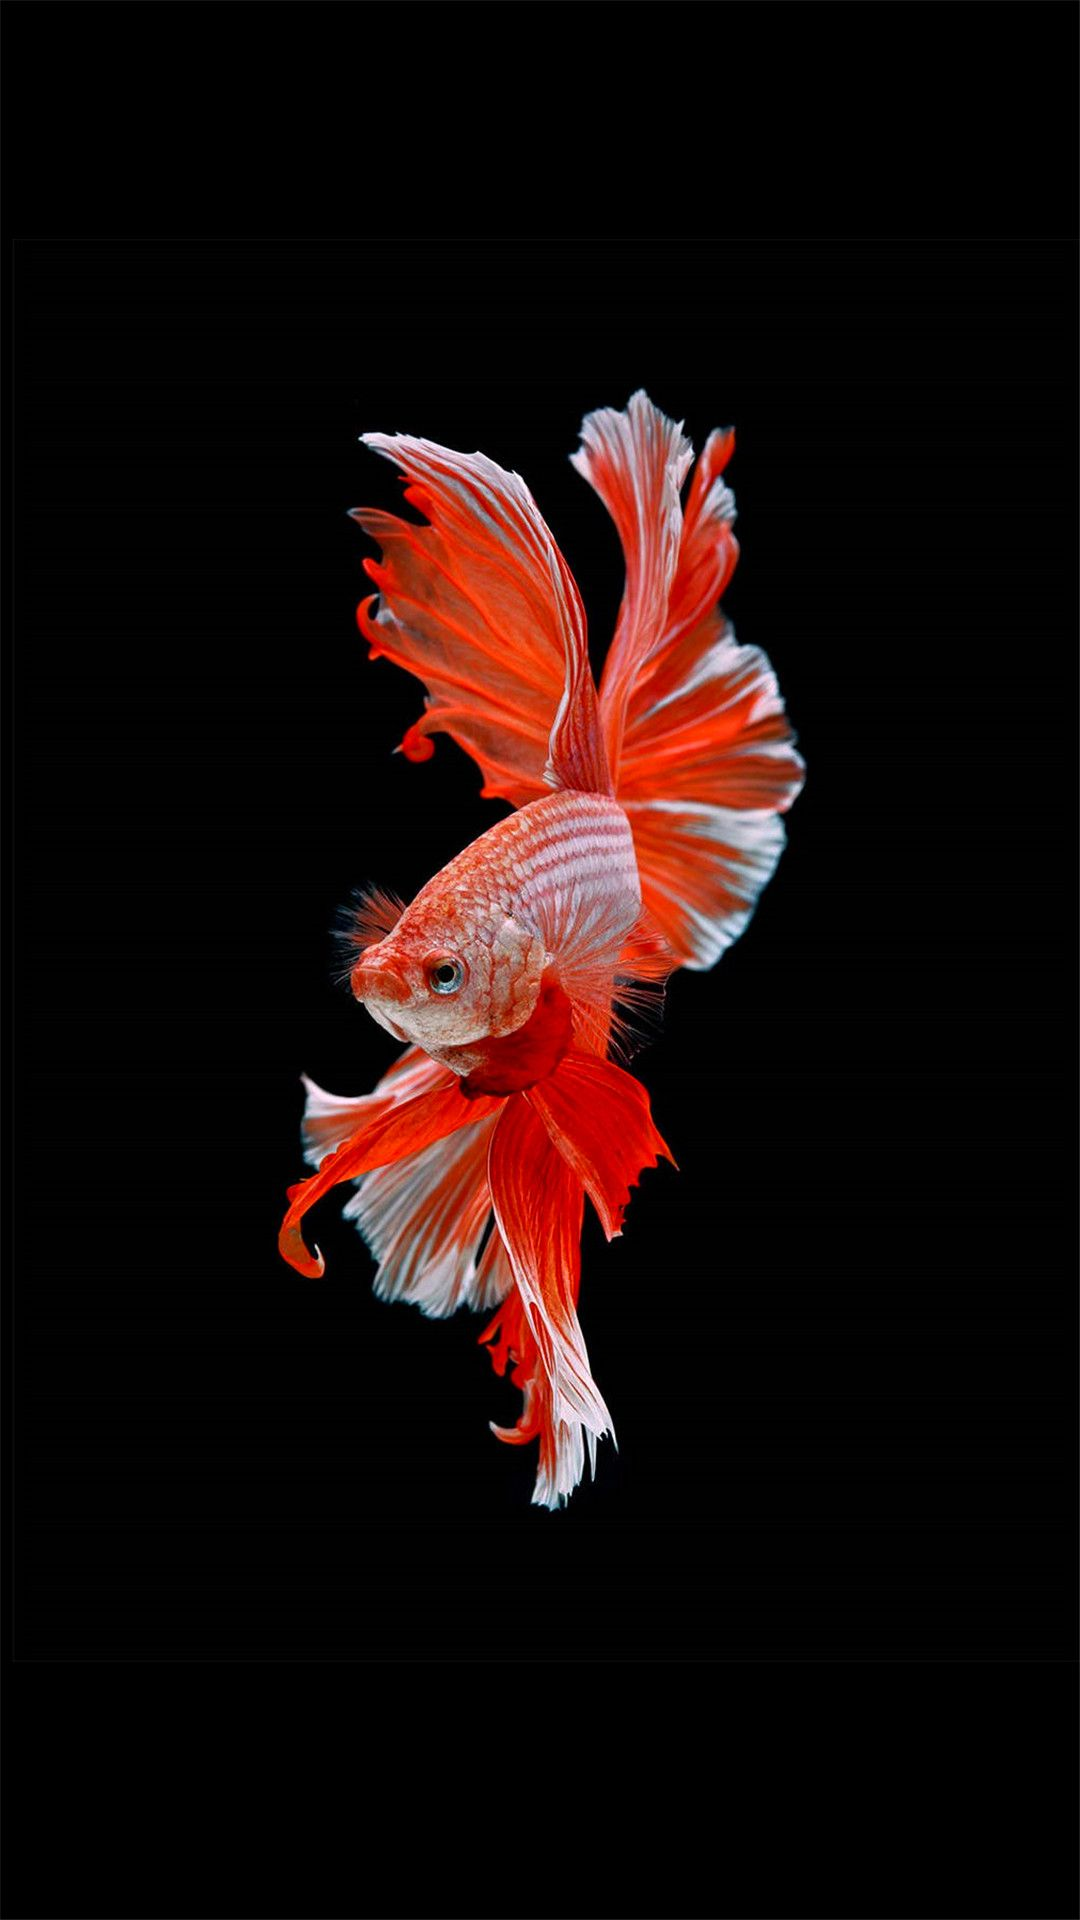 Fish hd wallpaper for Android